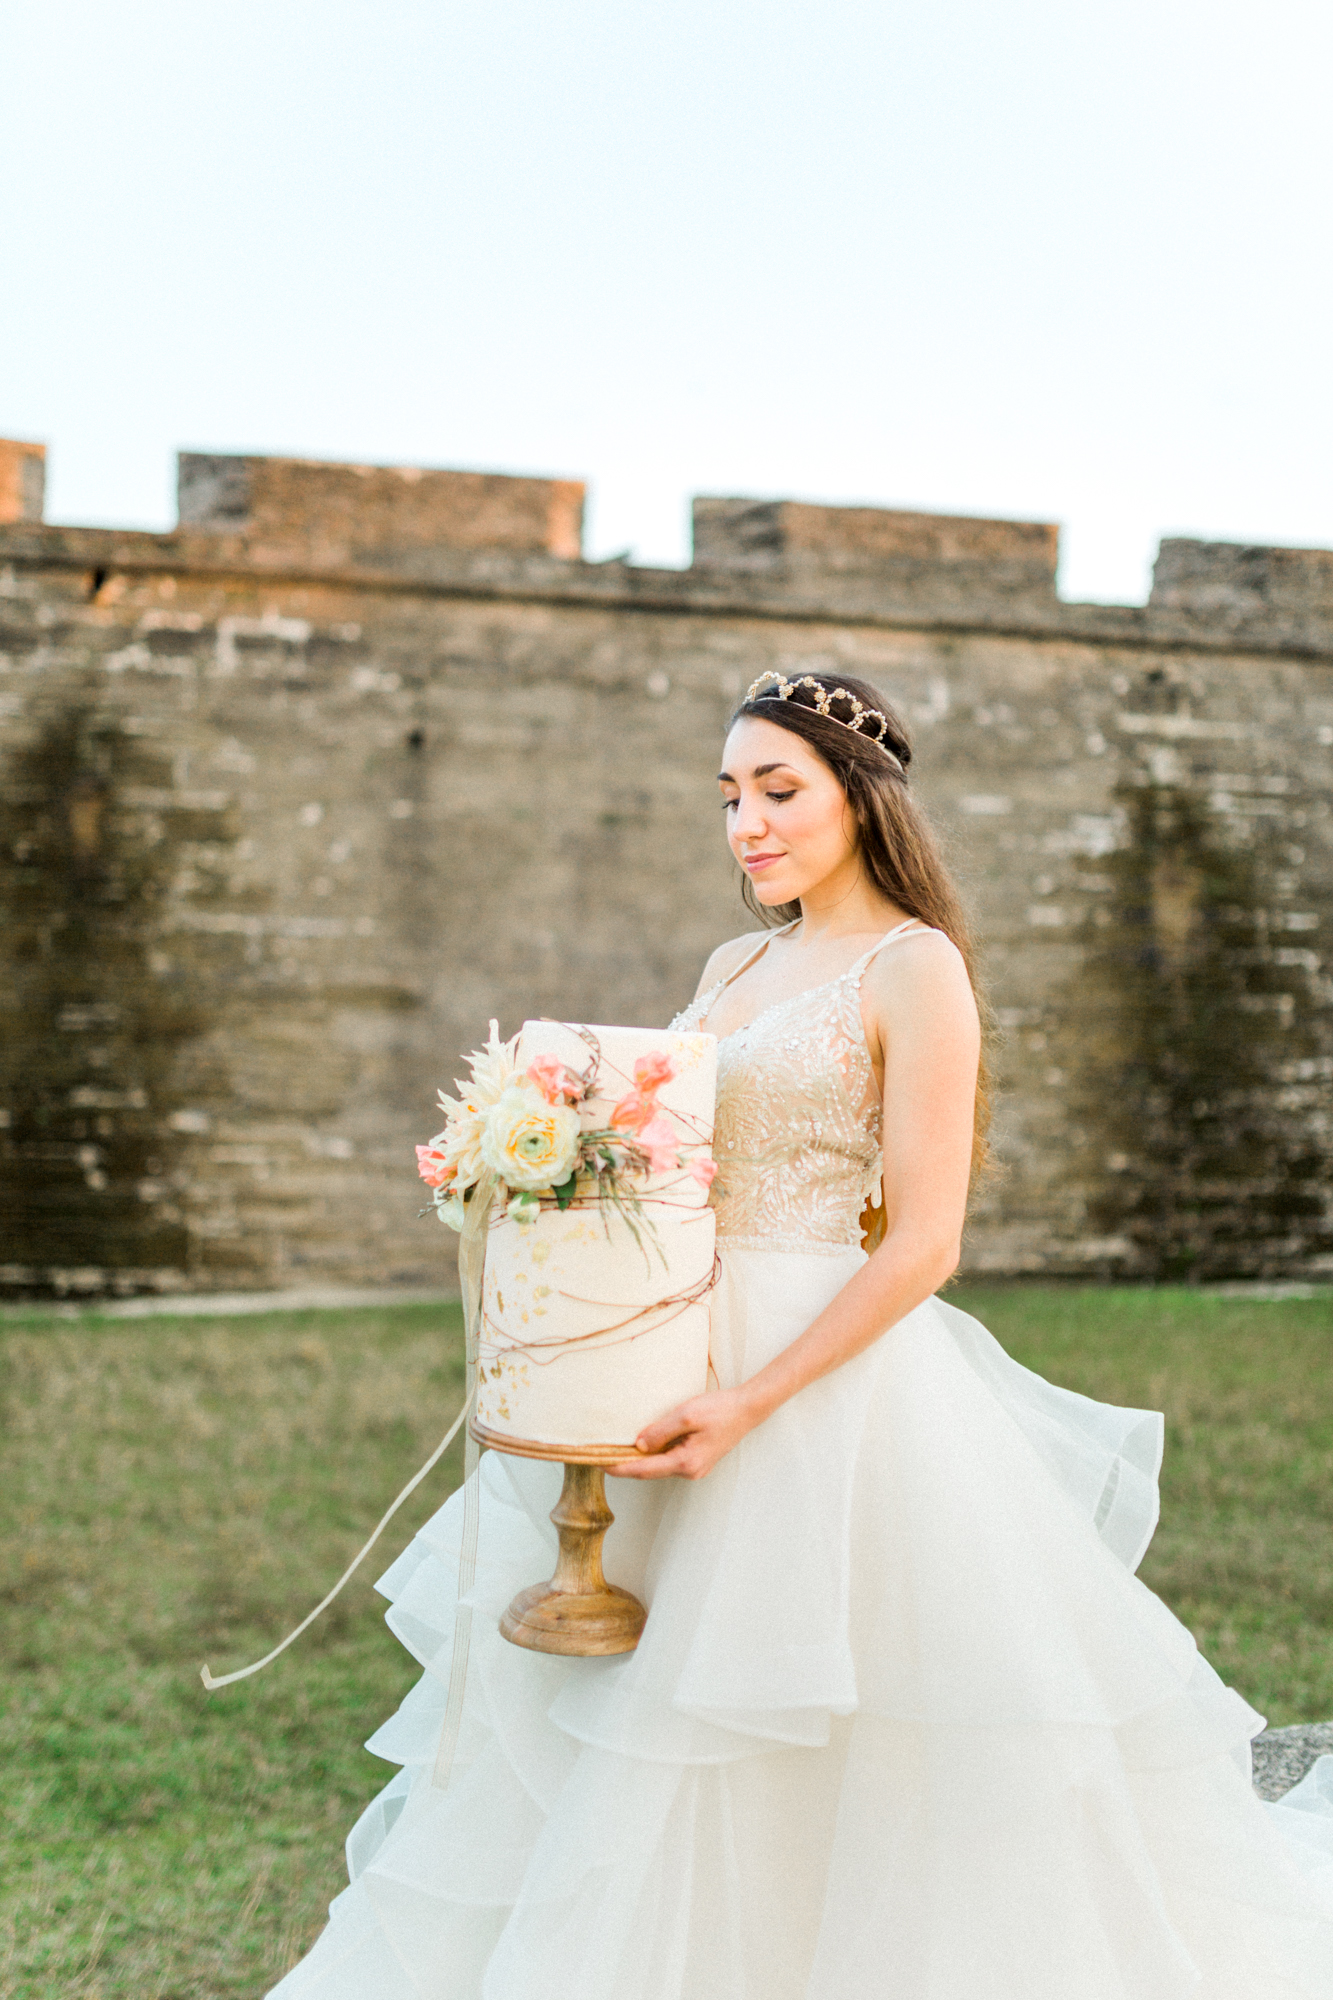 St. augustine, castillo de san marcos styled wedding bridal photo, cake